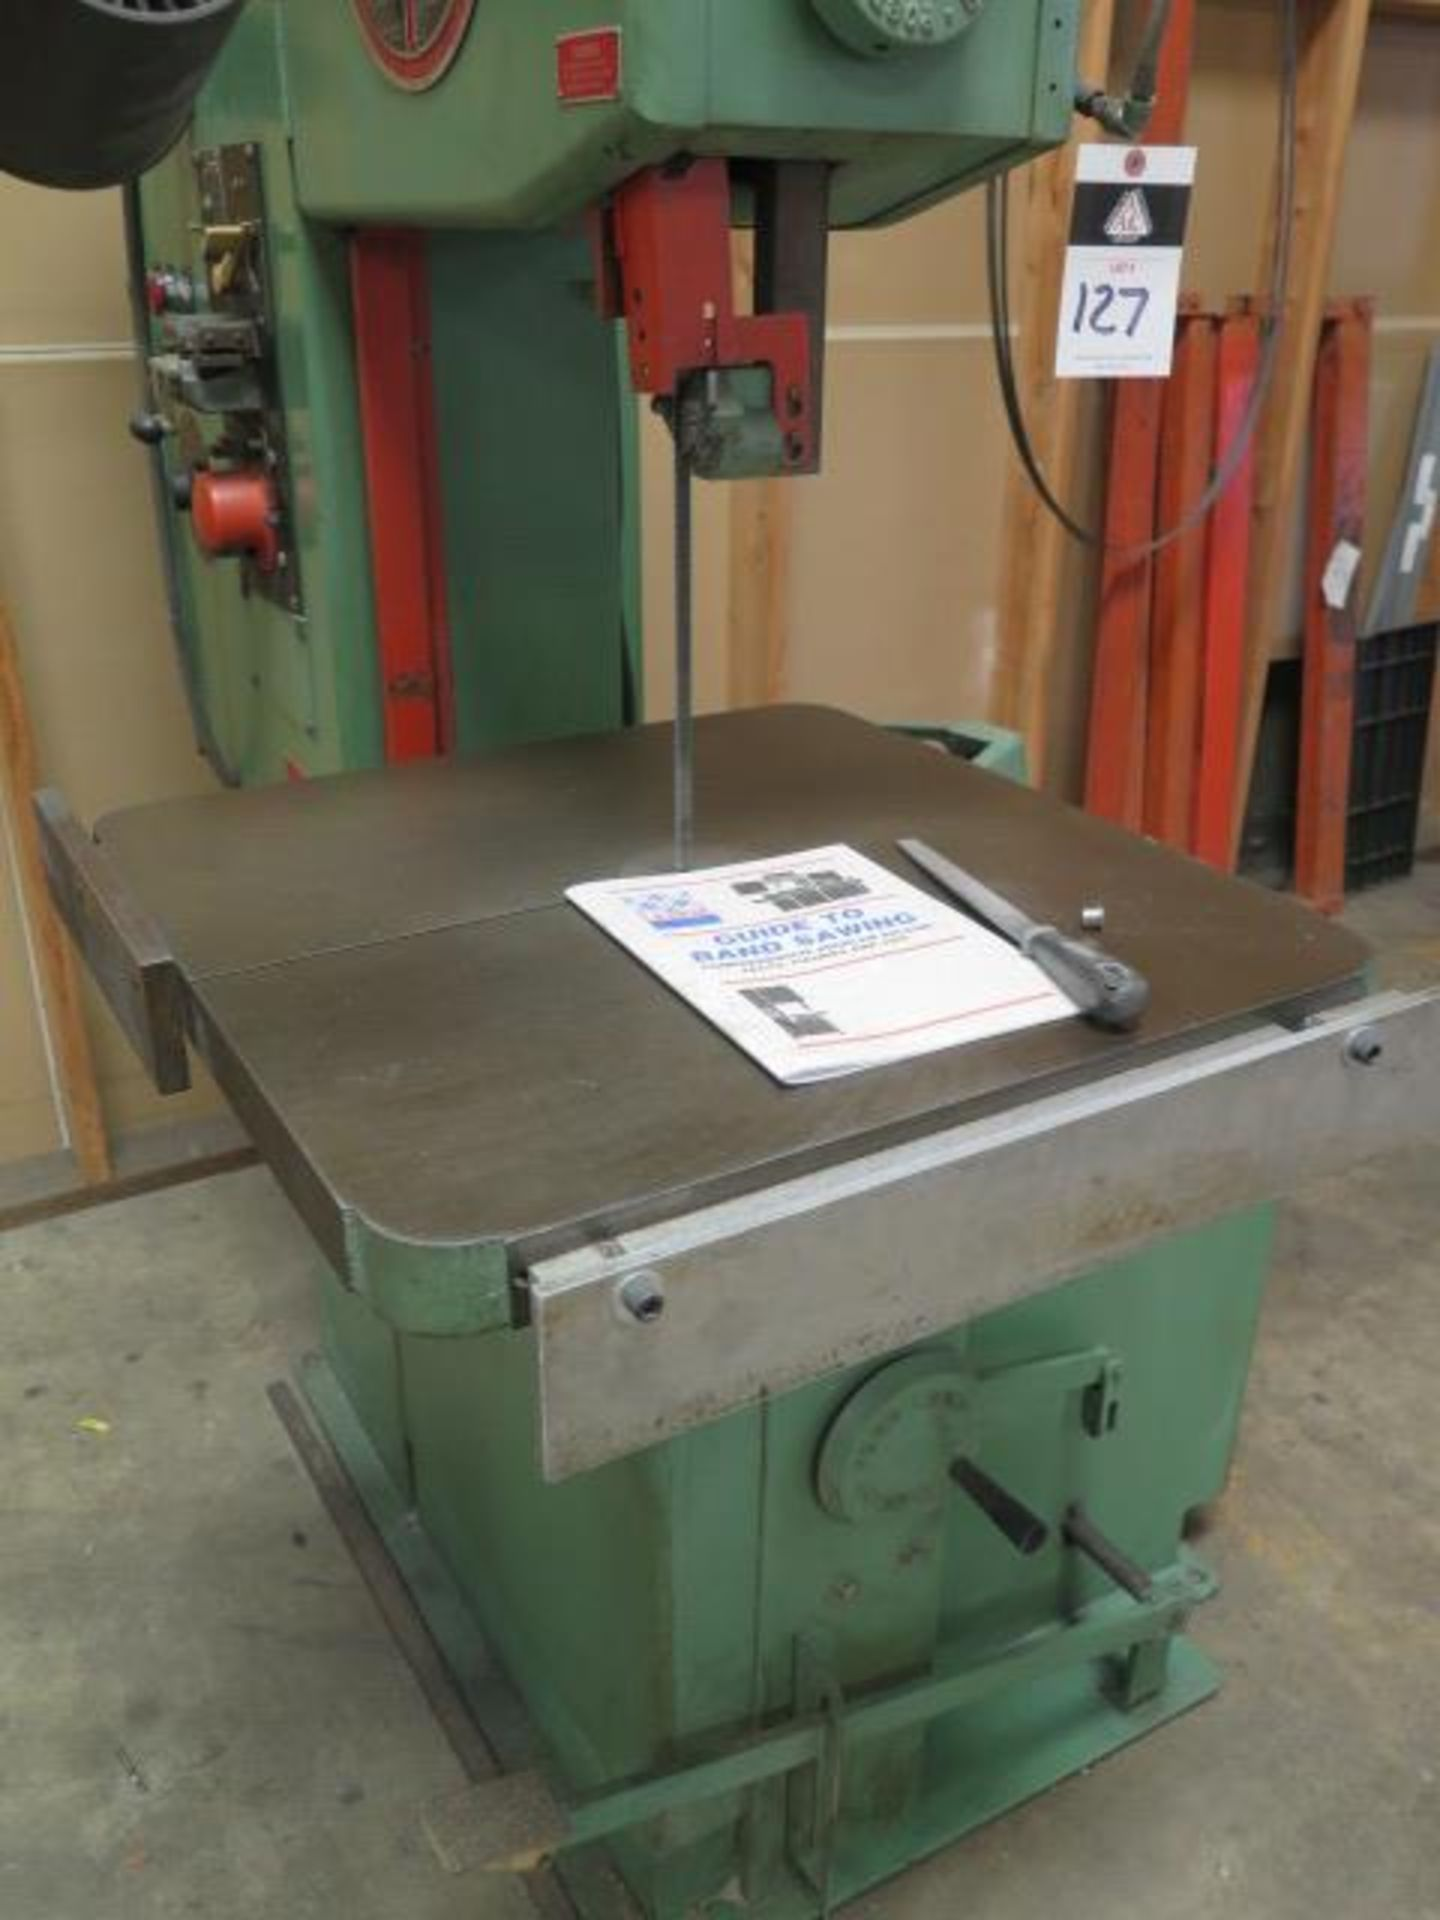 "DoAll 2013-10 20"" Vertical Band Saw s/n 377-861259 w/ Welder, 0-5200 RPM 26"" x 26"" Table, SOLD AS IS - Image 8 of 11"